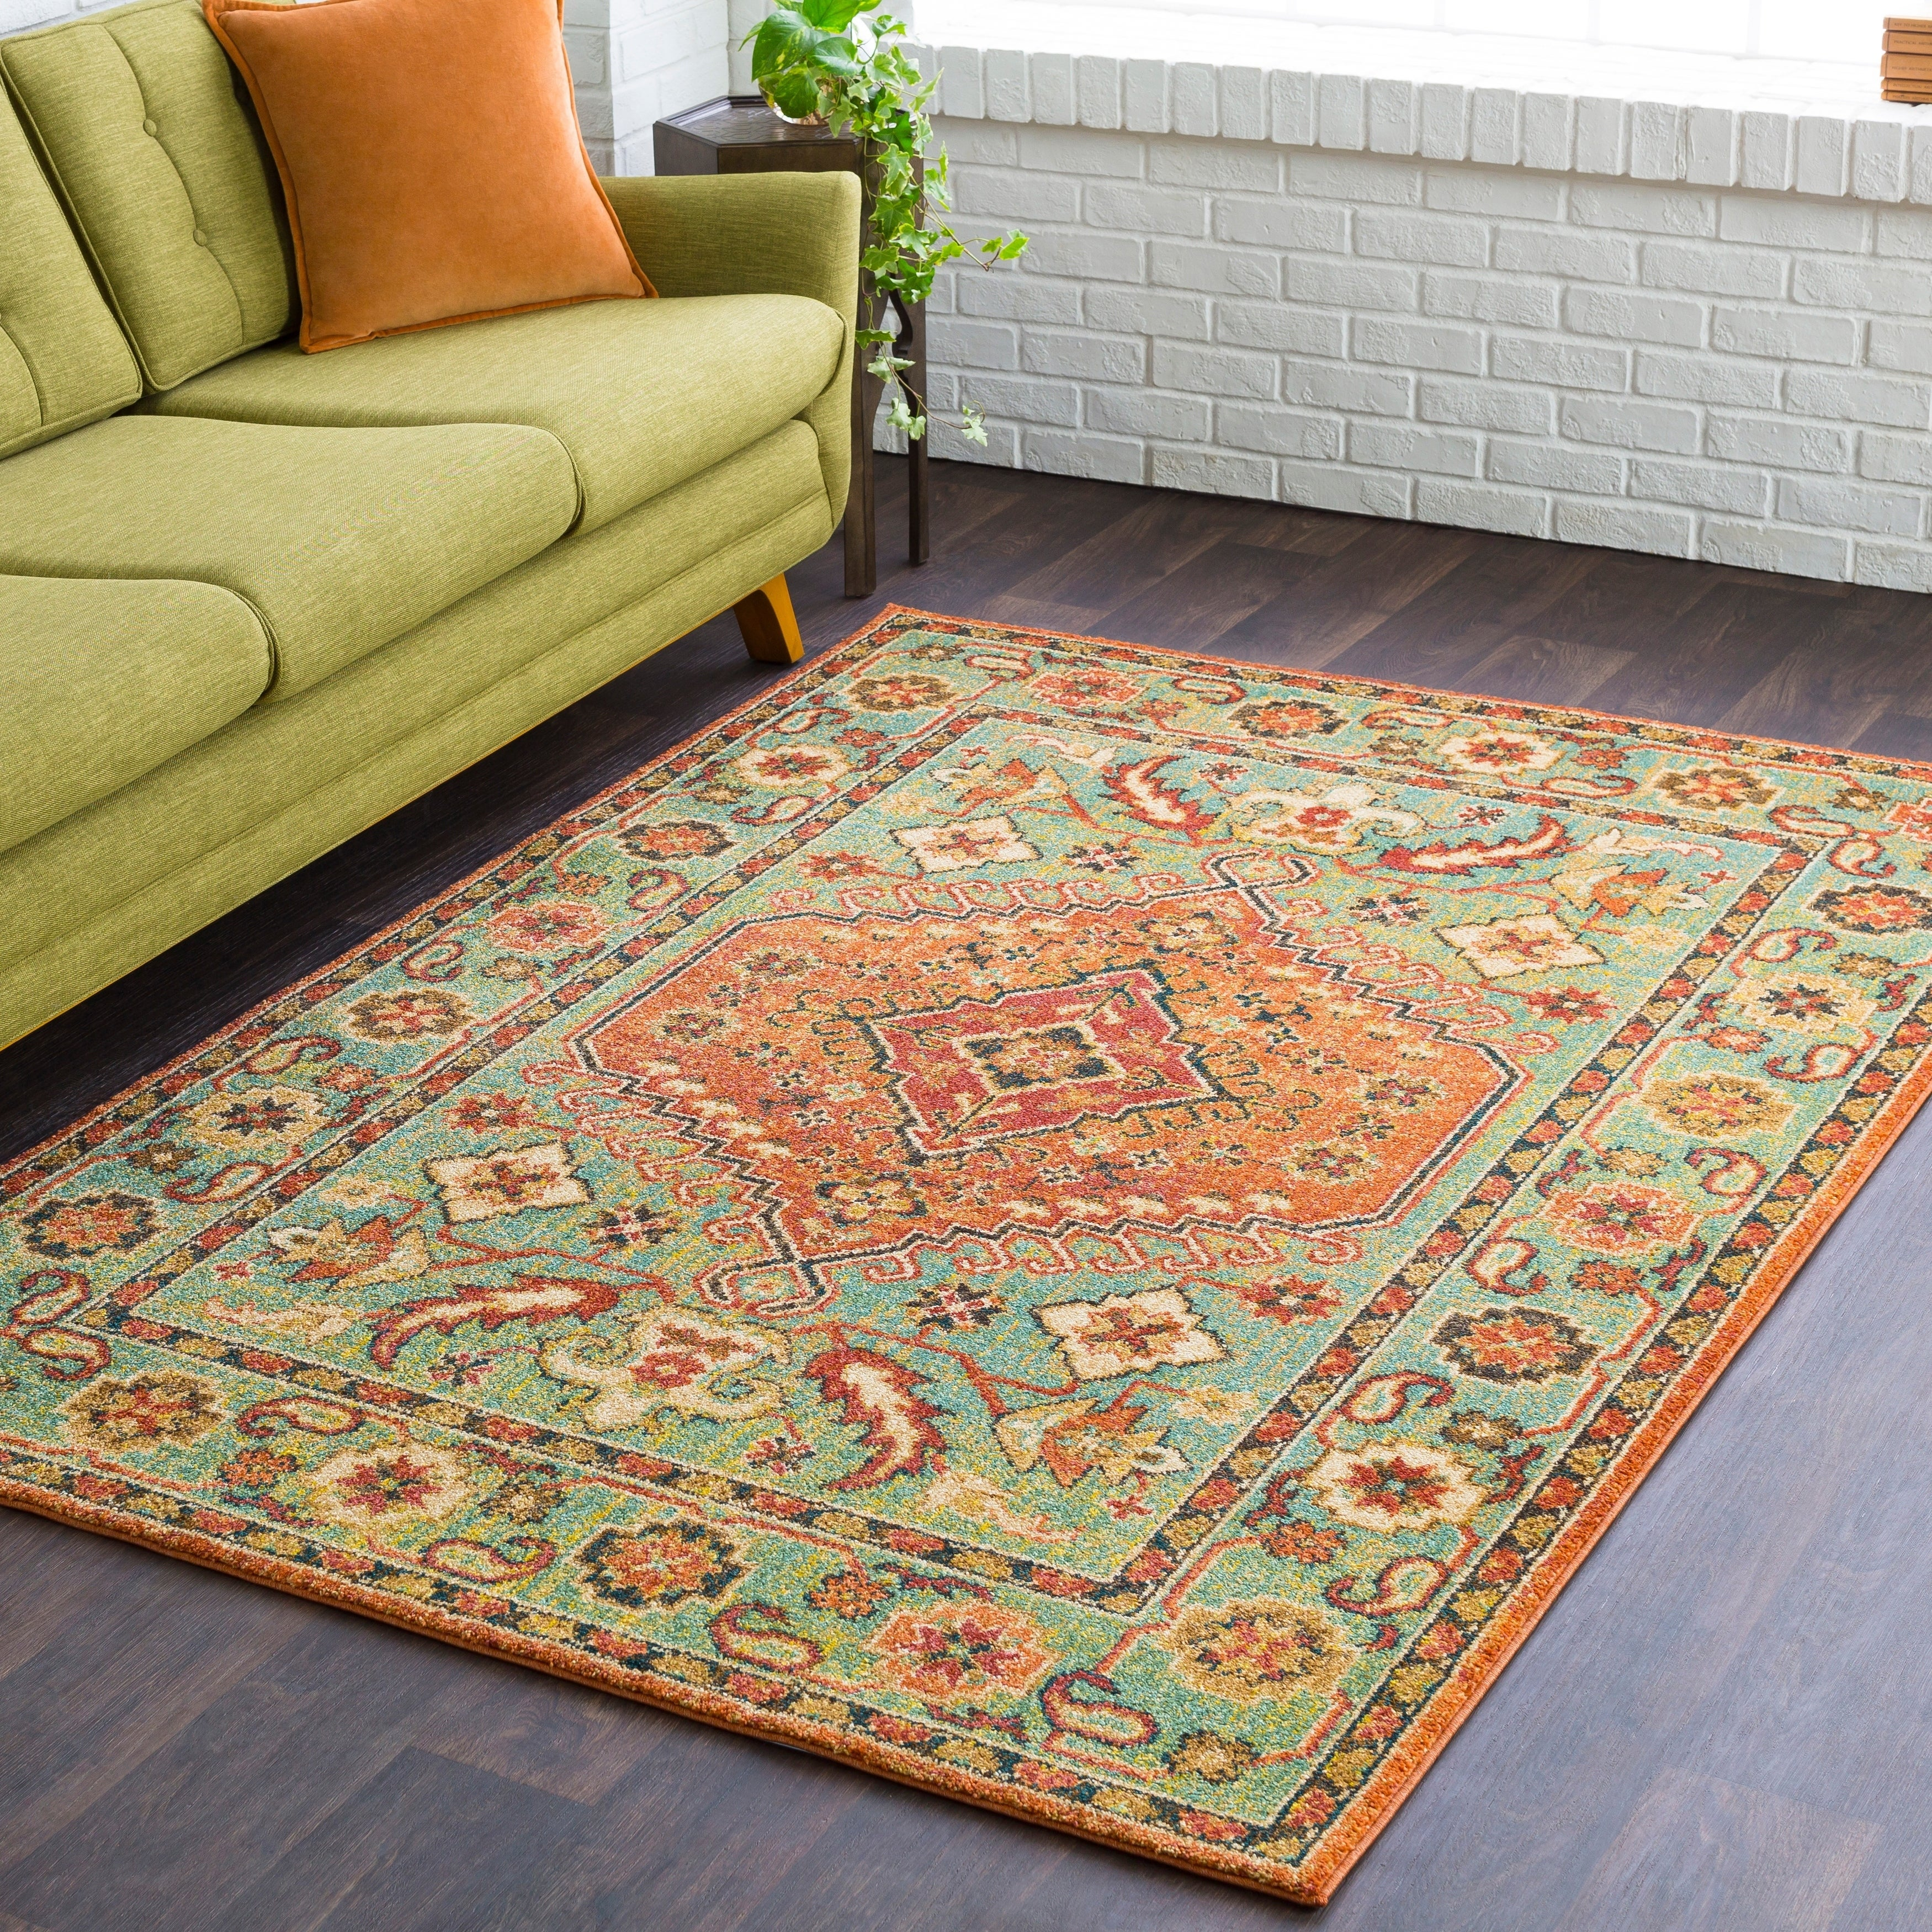 Shop Hillary Southwestern Orange & Green Area Rug   2' x 3'   On